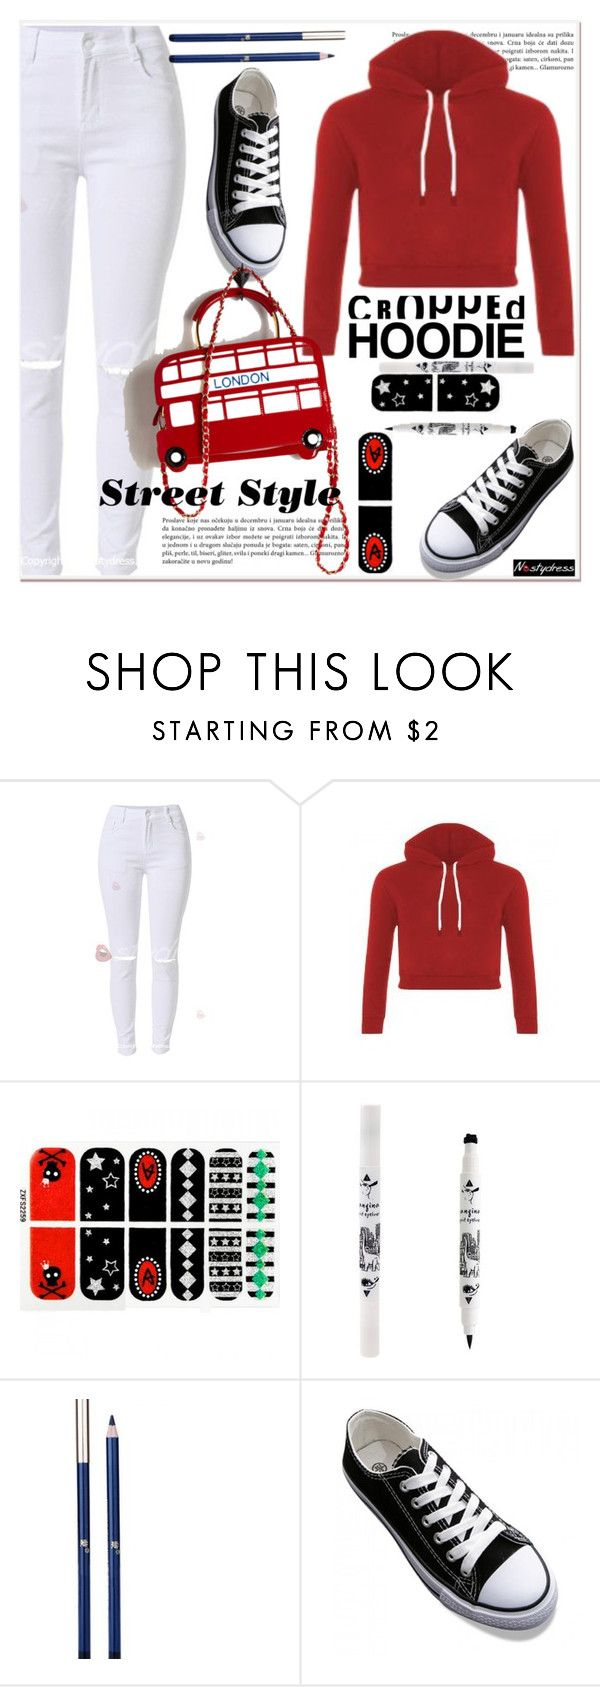 """""""Cute Trend: Cropped Hoodies 4"""" by paculi ❤ liked on Polyvore featuring nastydress and croppedhodie"""